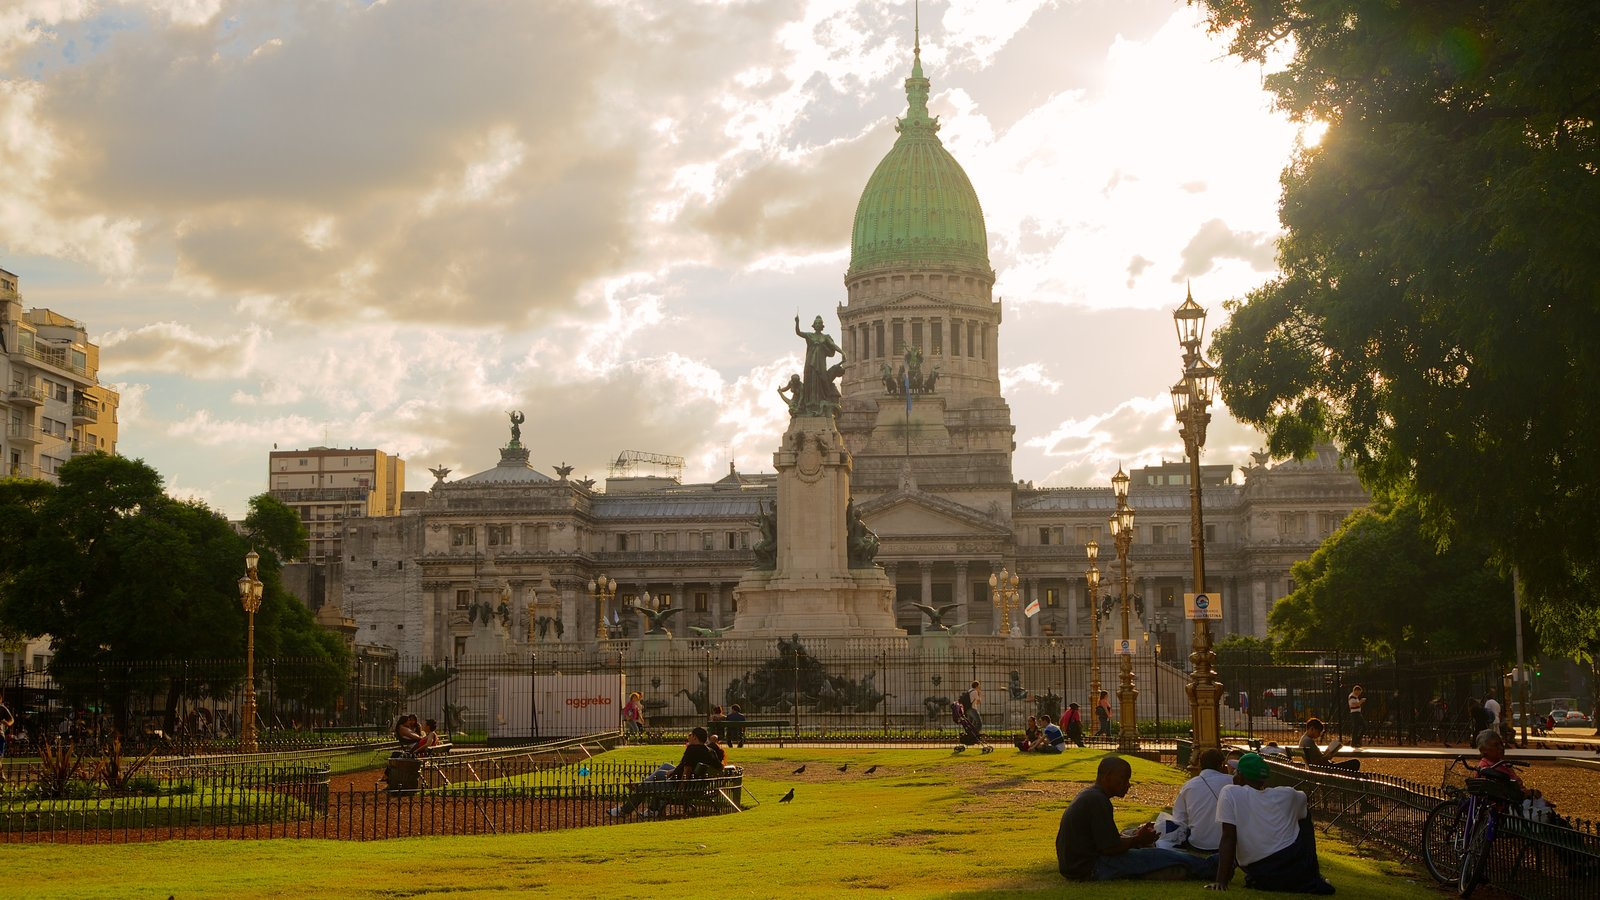 Argentine National Congress which includes a park and heritage architecture